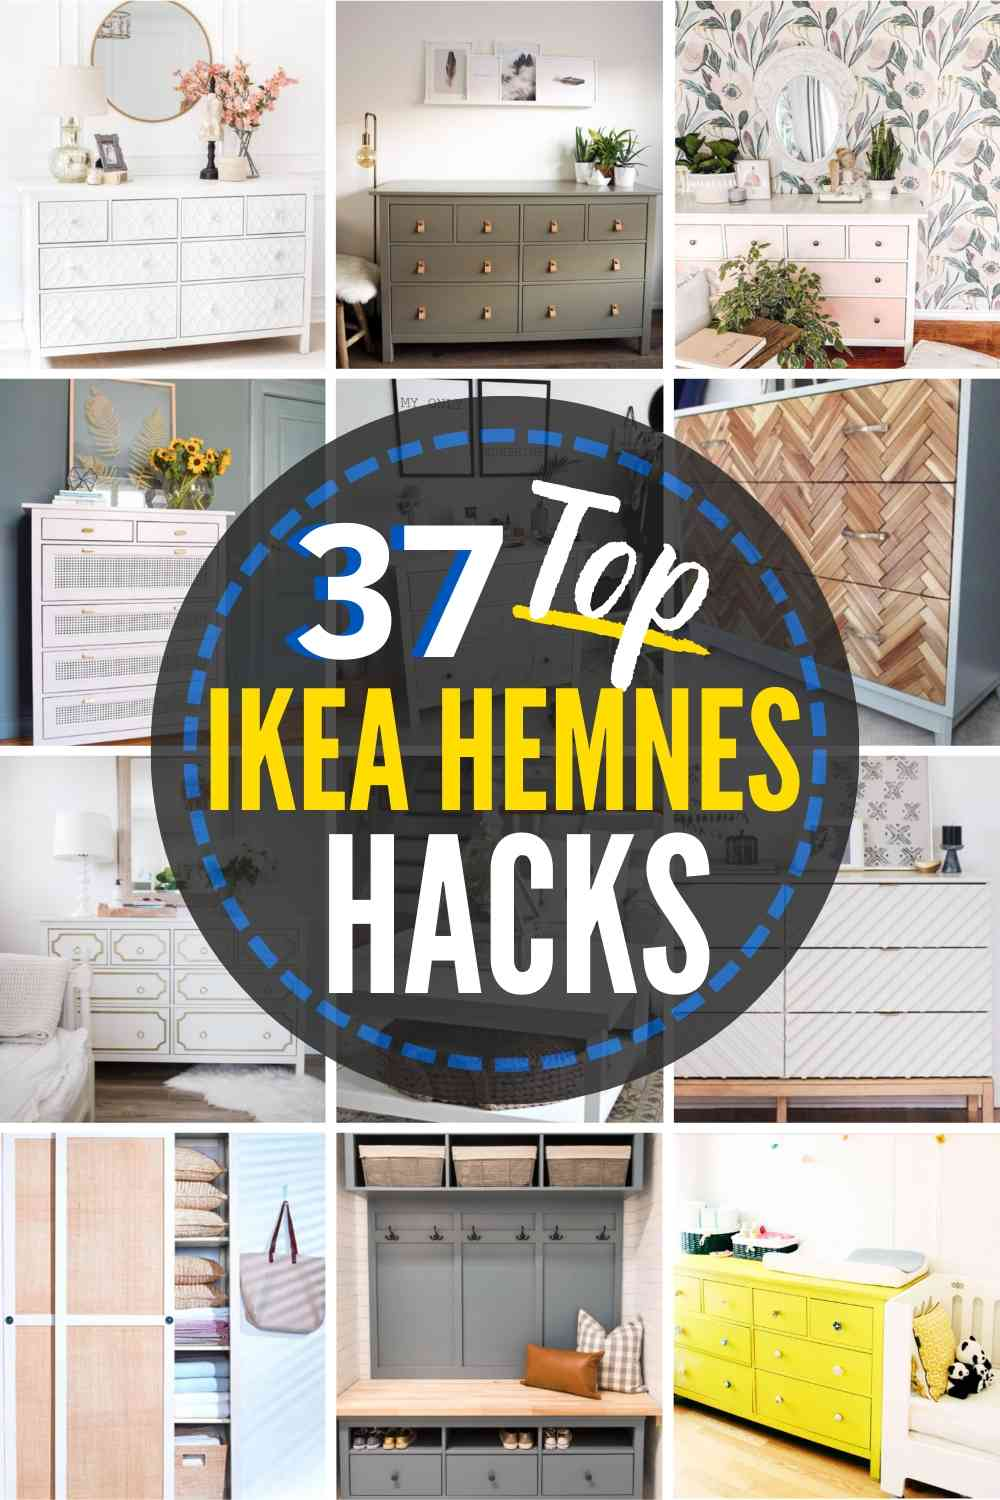 These 37 IKEA HEMNES HACKS are Seriously Stunning